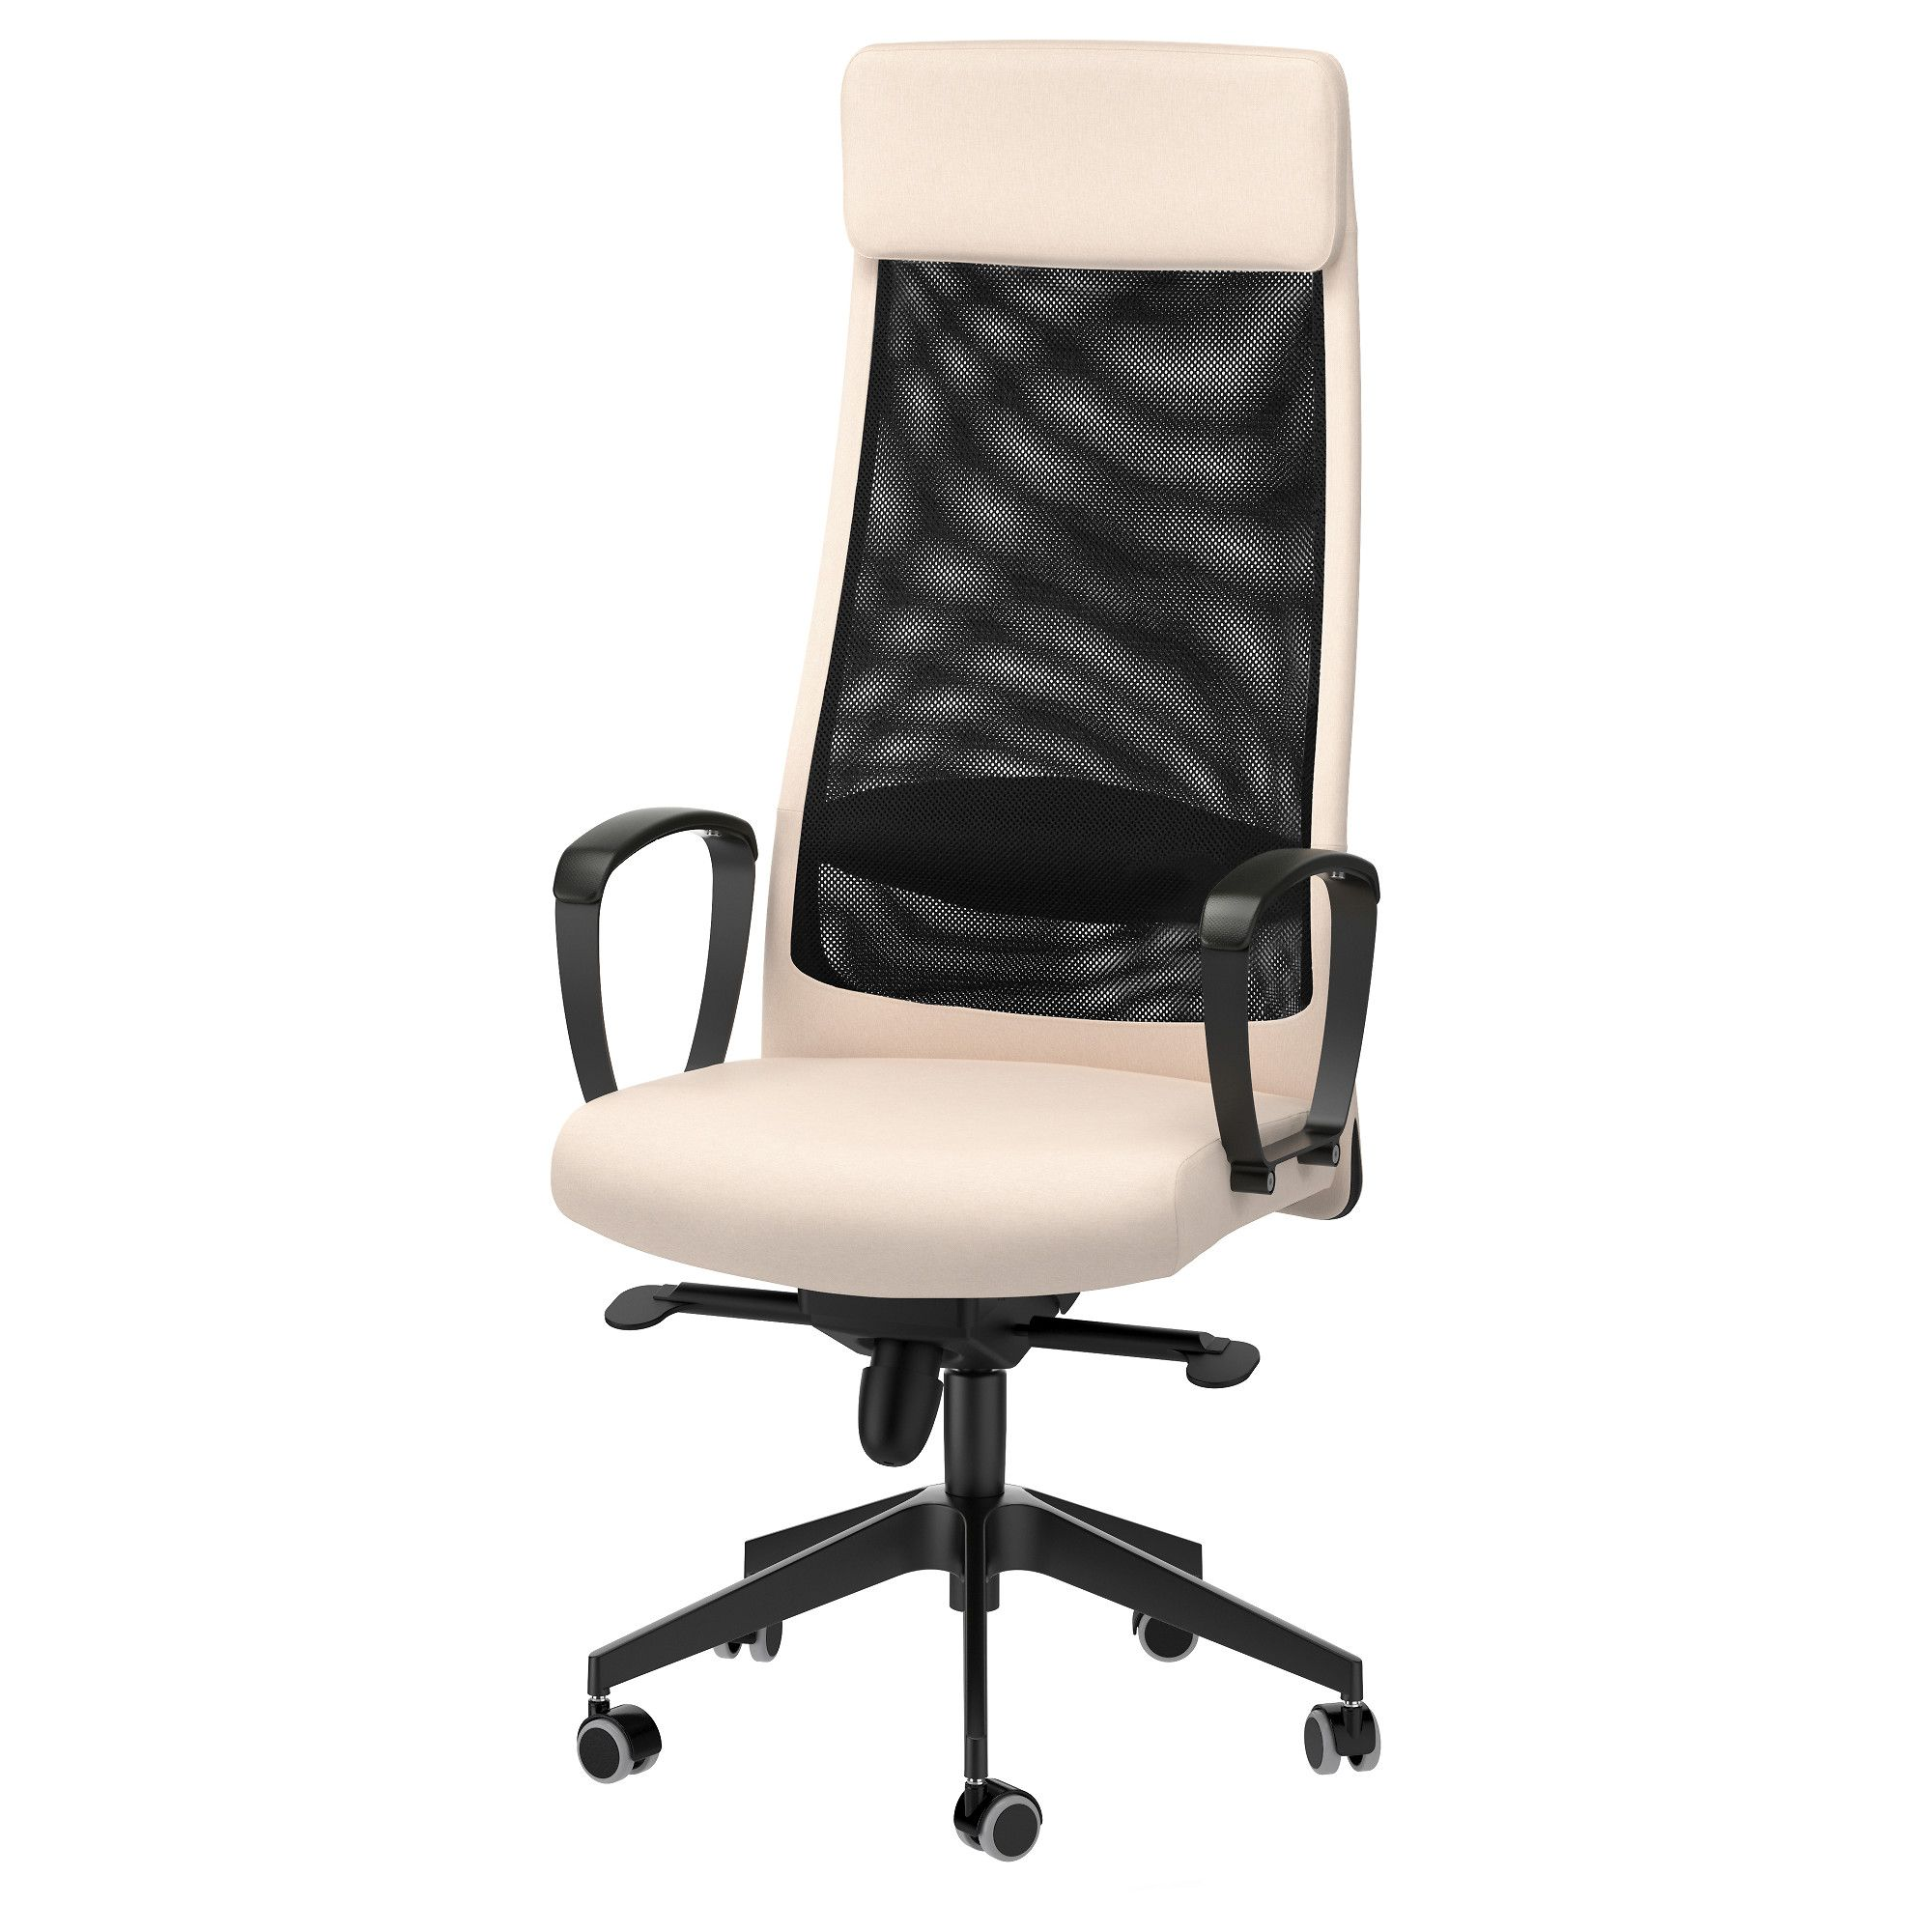 office chair controls. MARKUS Swivel Chair, Glose Black Robust Office Chair Controls 5